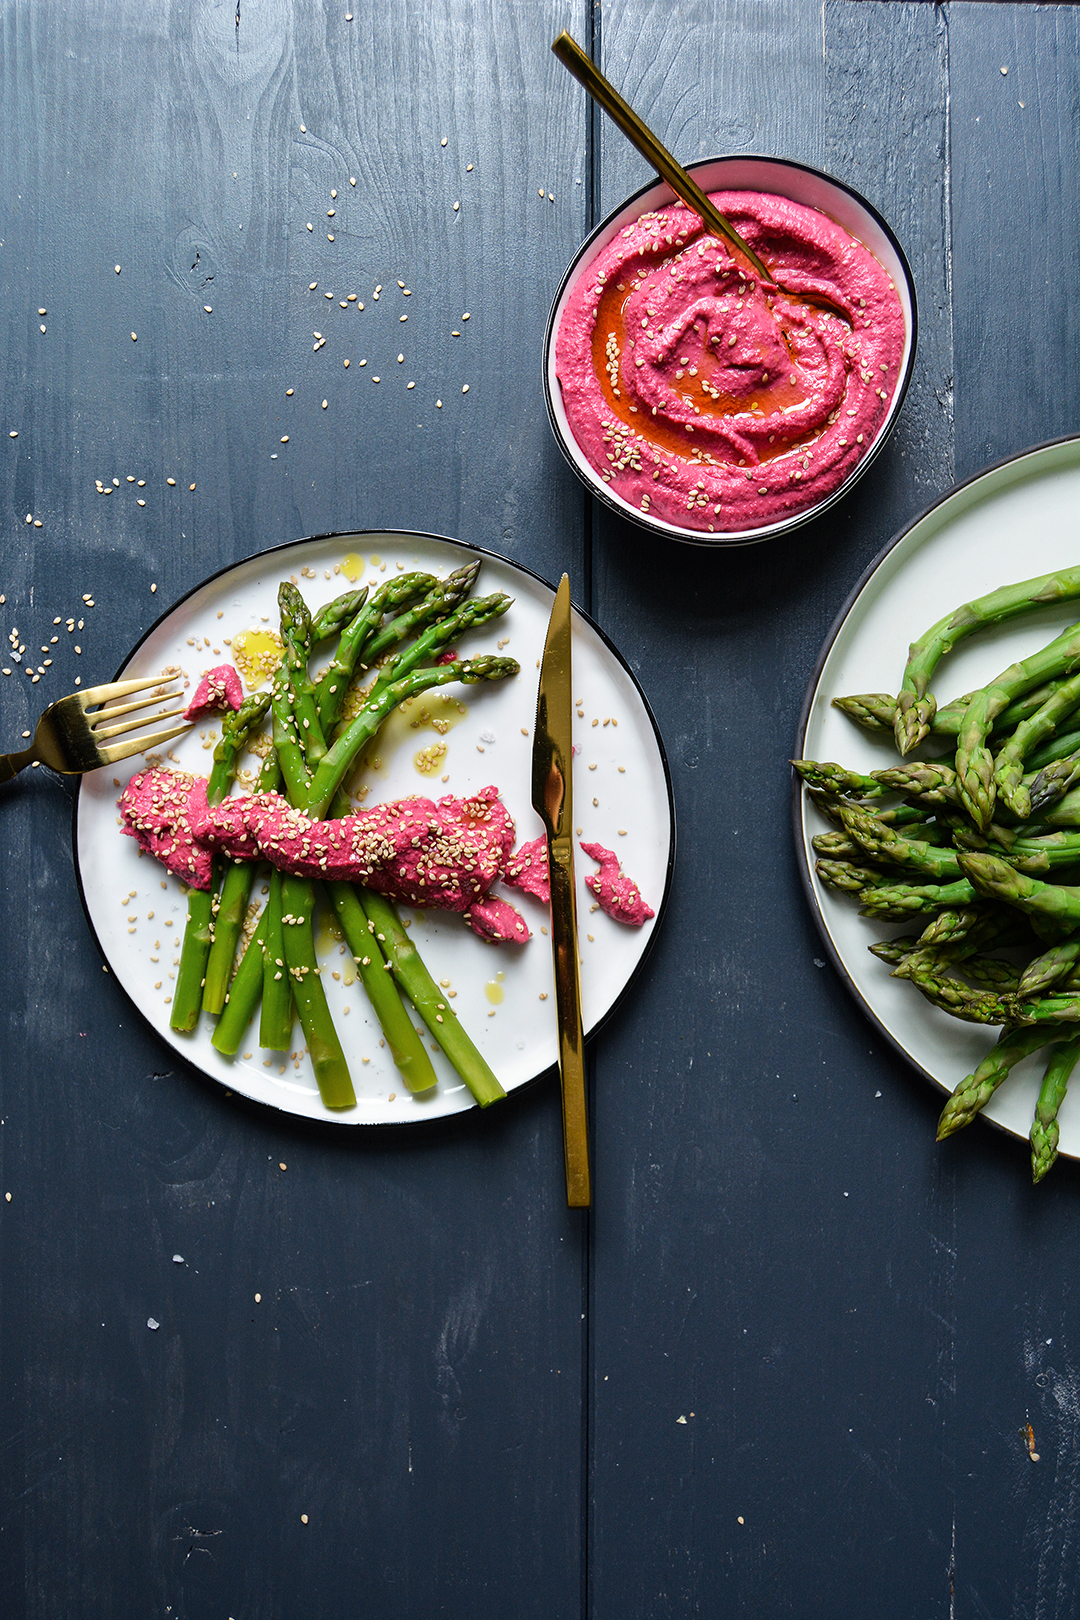 Green Asparagus with Beet and Chickpea Hummus